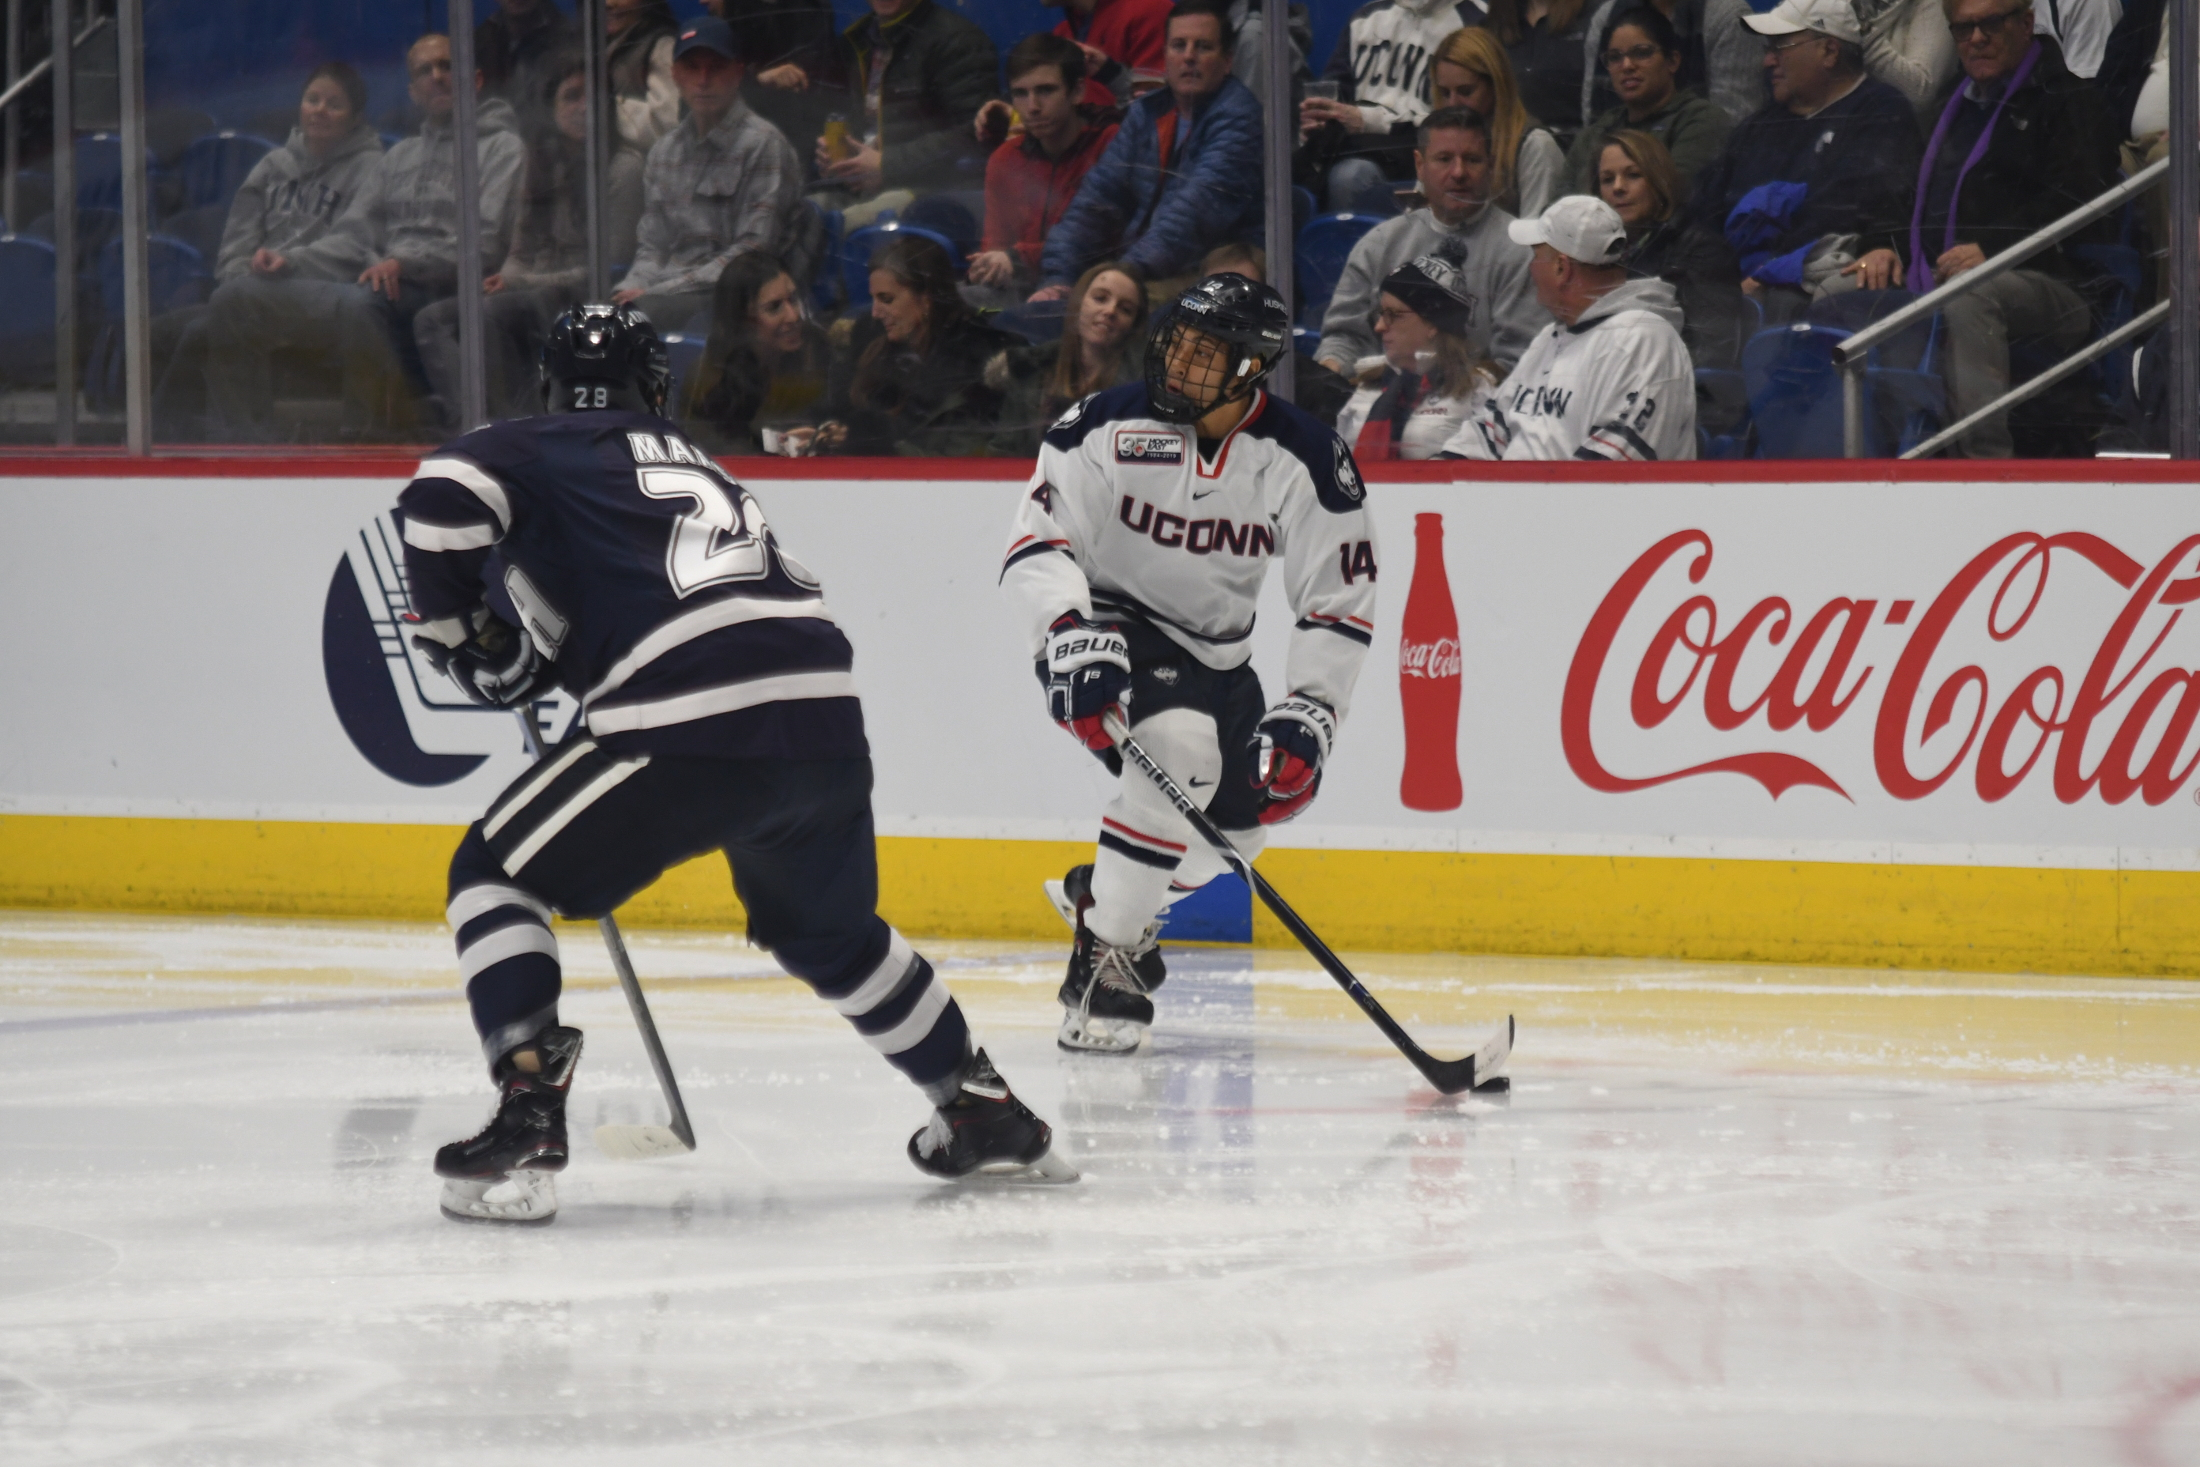 The UConn men's hockey team battled the University of New Hampshire at the XL Center in Hartford, Connecticut on January 25, 2019. The game resulted in a 2-2 tie after an overtime (Judah Shingleton/The Daily Campus)